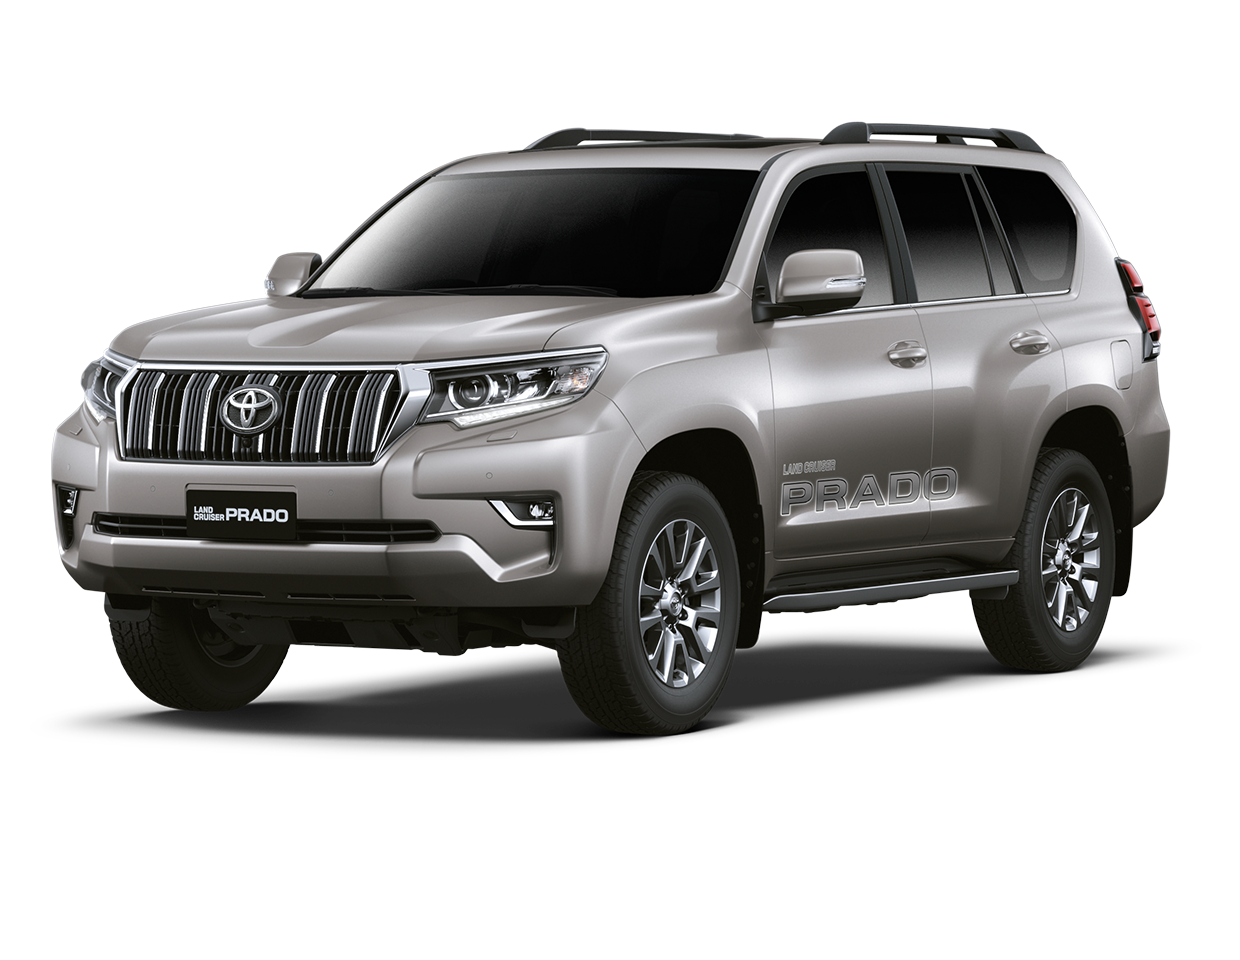 78 The Best Toyota Prado 2019 Price And Review